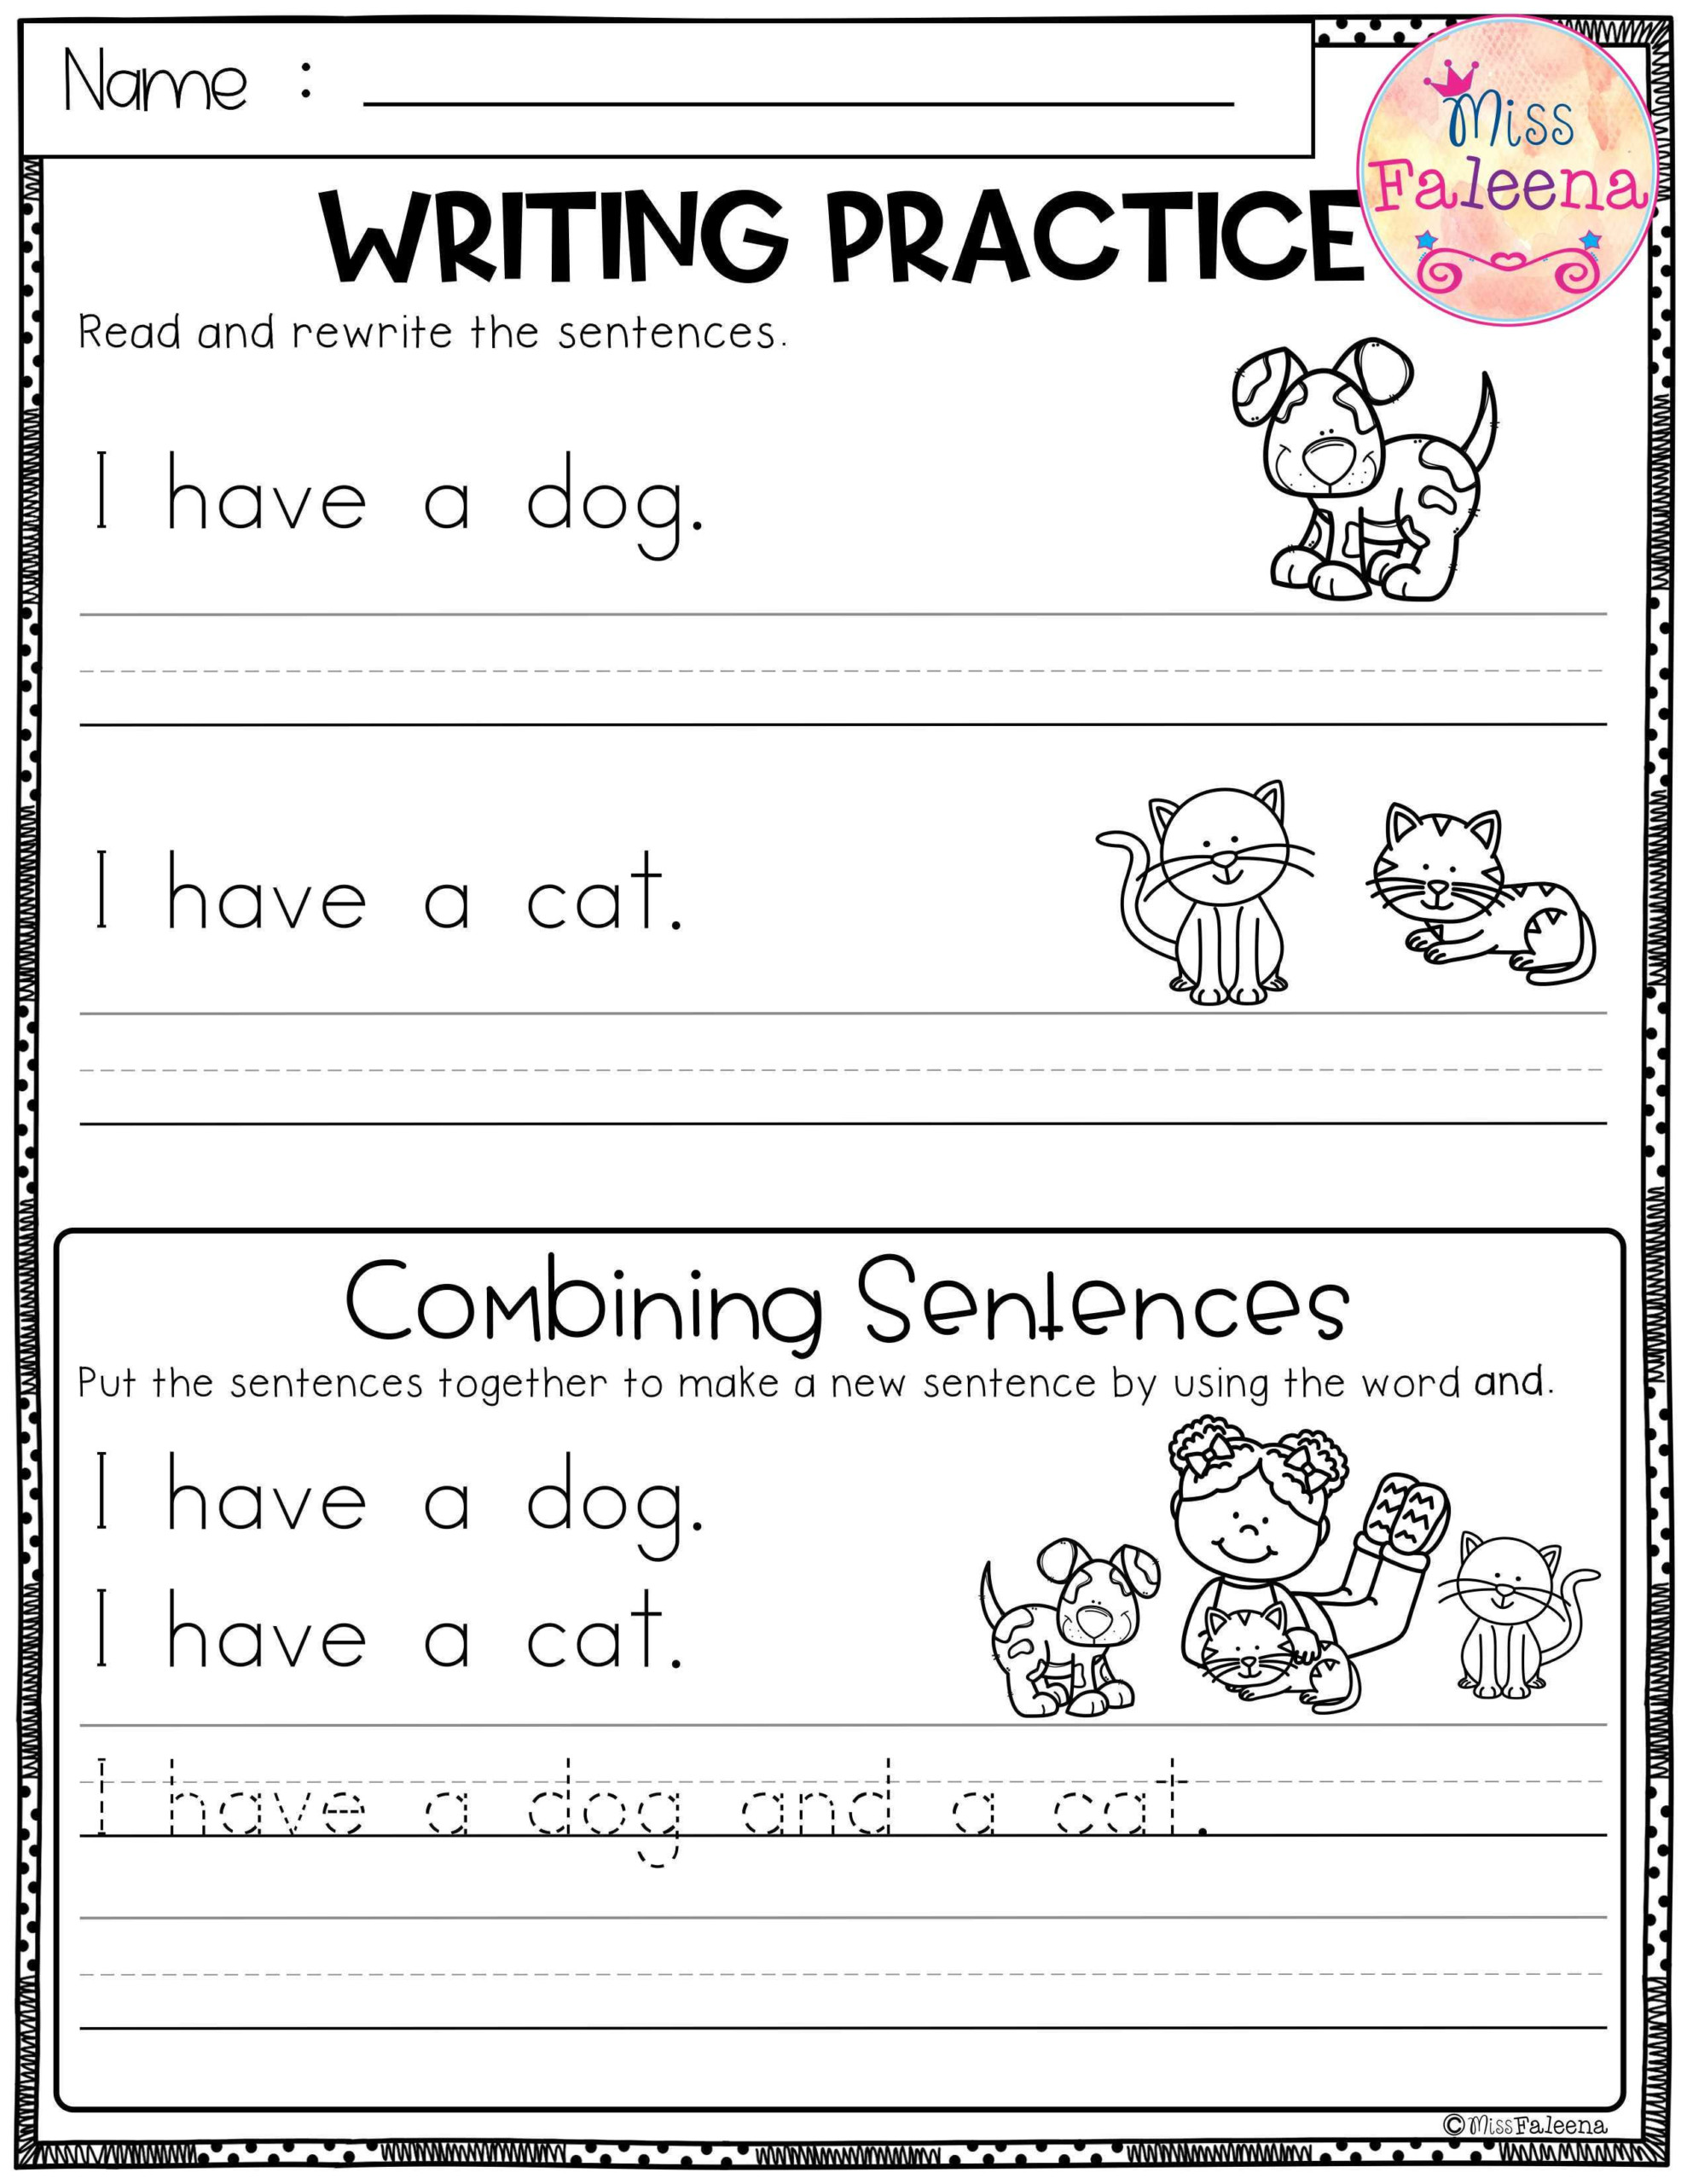 Free Writing Practice (Combining Sentences). This Product